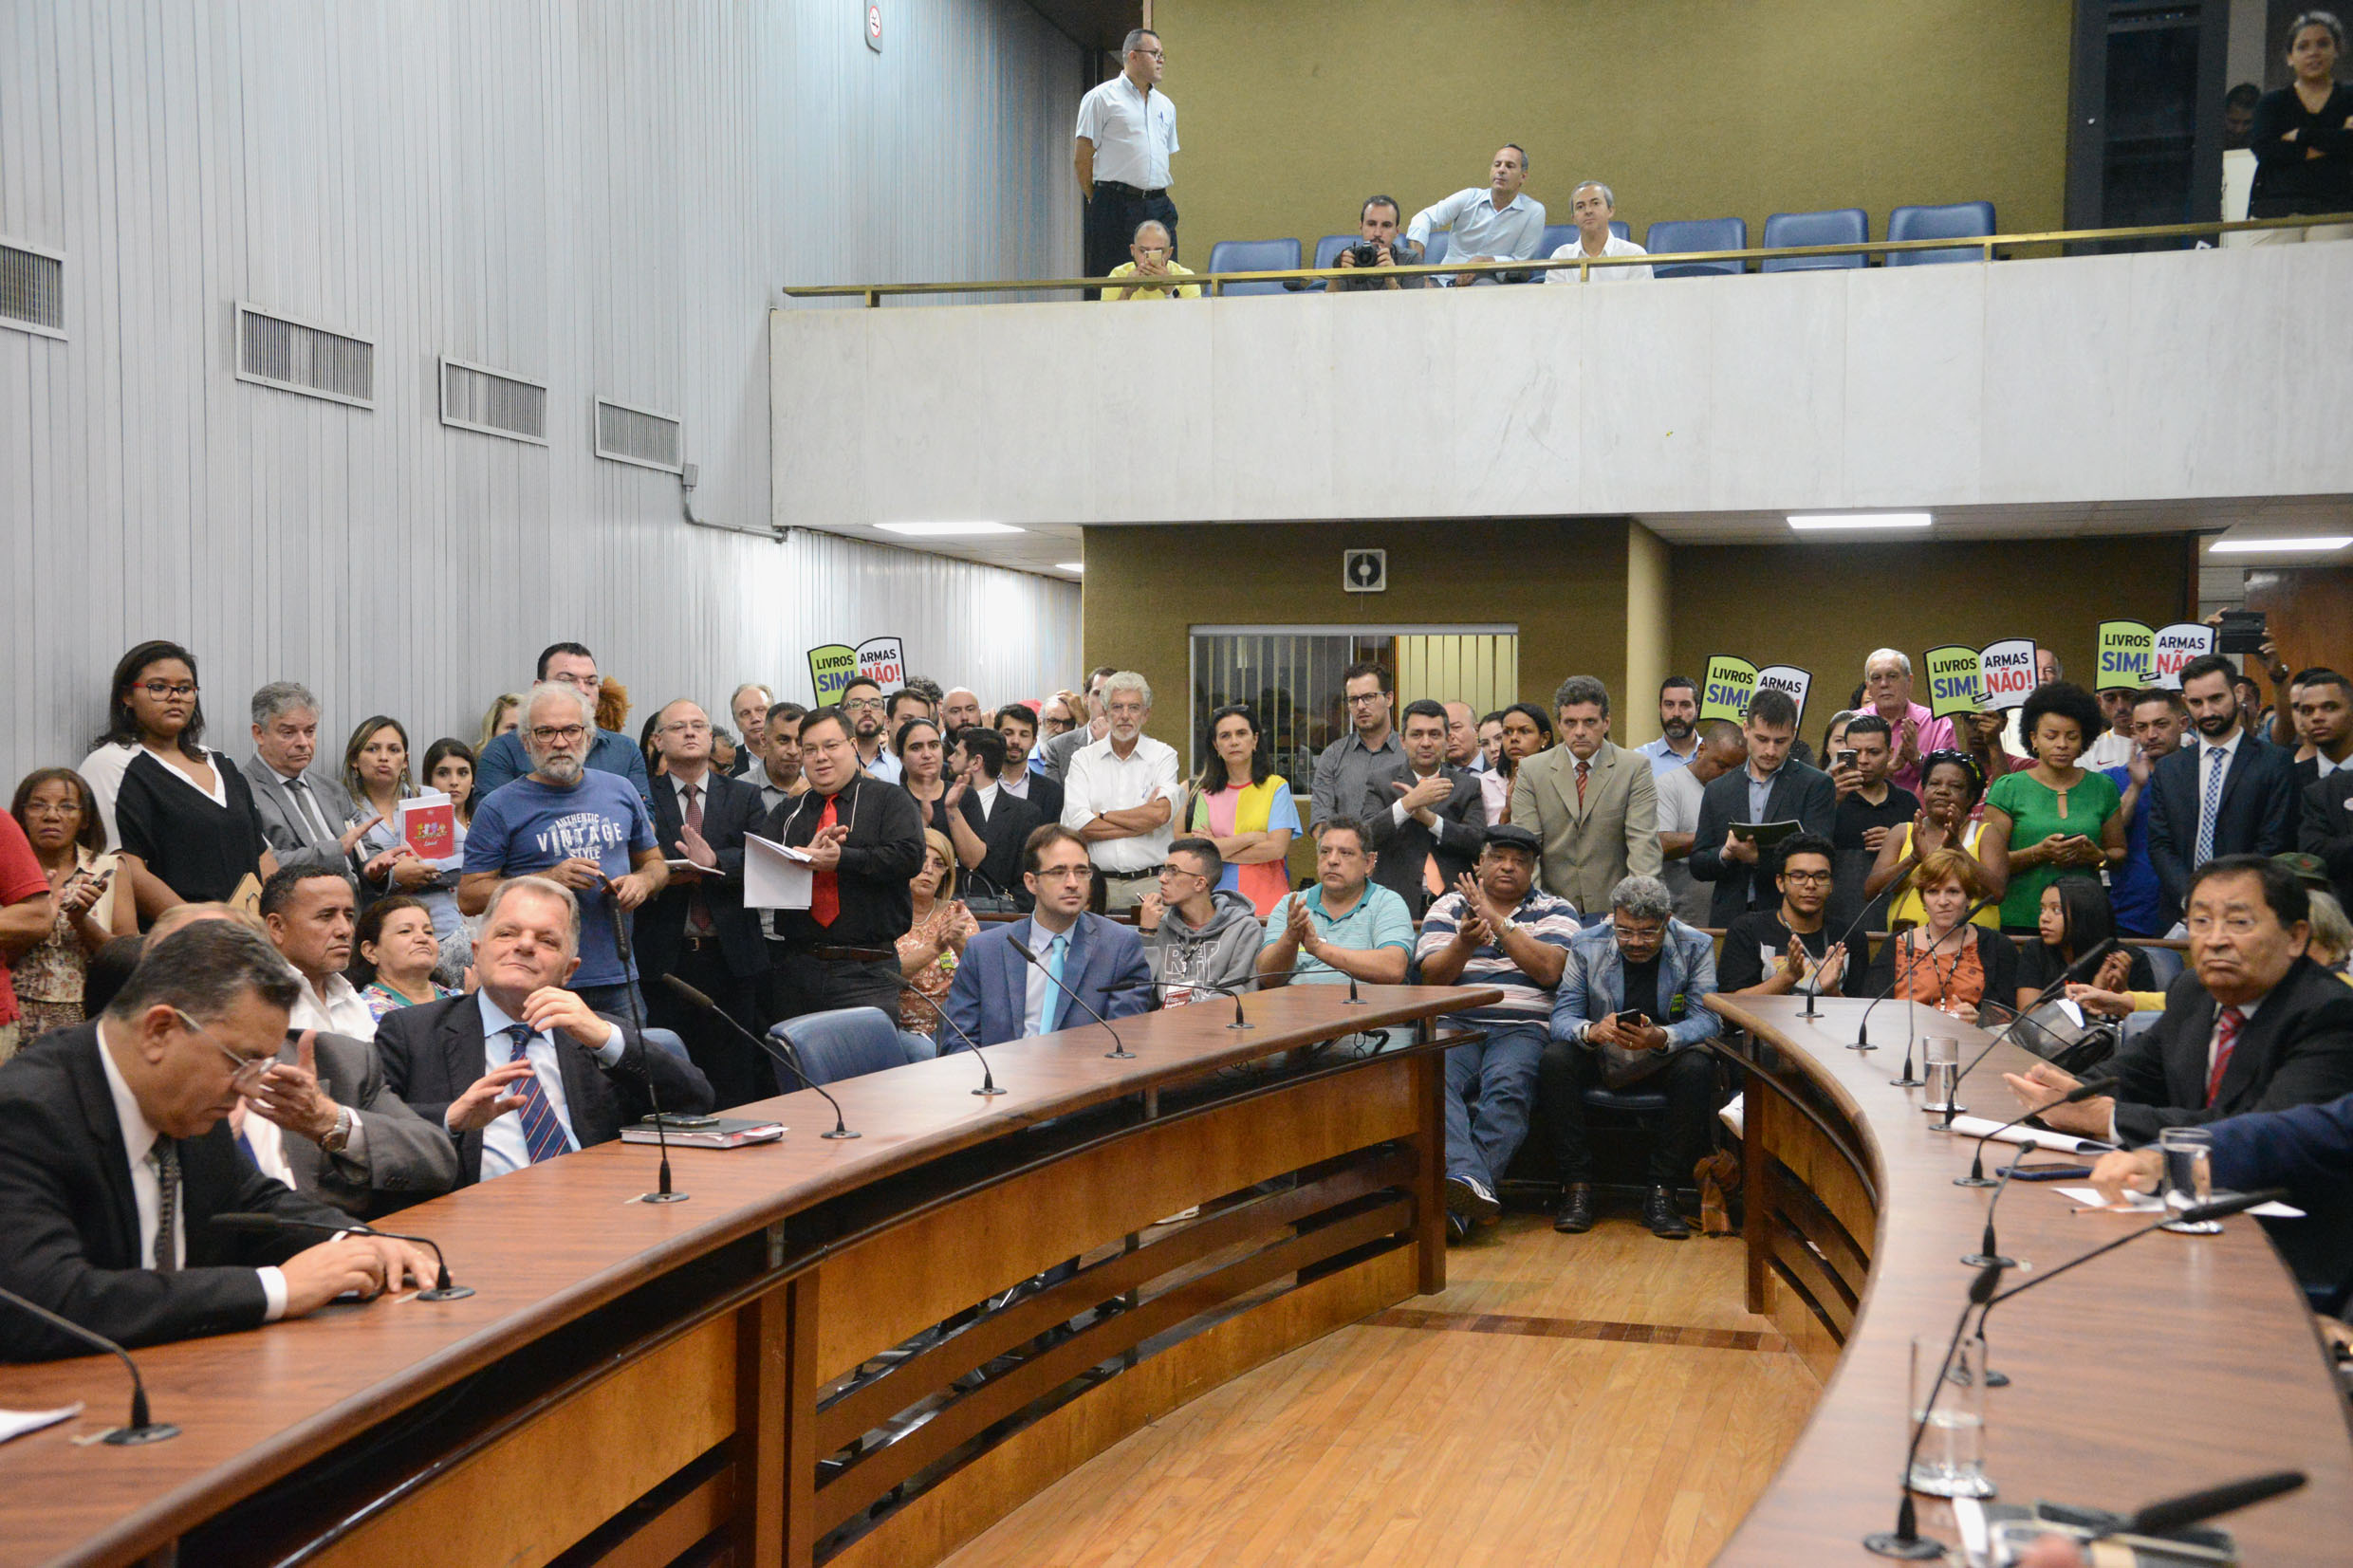 Parlamentares na comissão <a style='float:right' href='https://www3.al.sp.gov.br/repositorio/noticia/N-04-2019/fg232822.jpg' target=_blank><img src='/_img/material-file-download-white.png' width='14px' alt='Clique para baixar a imagem'></a>